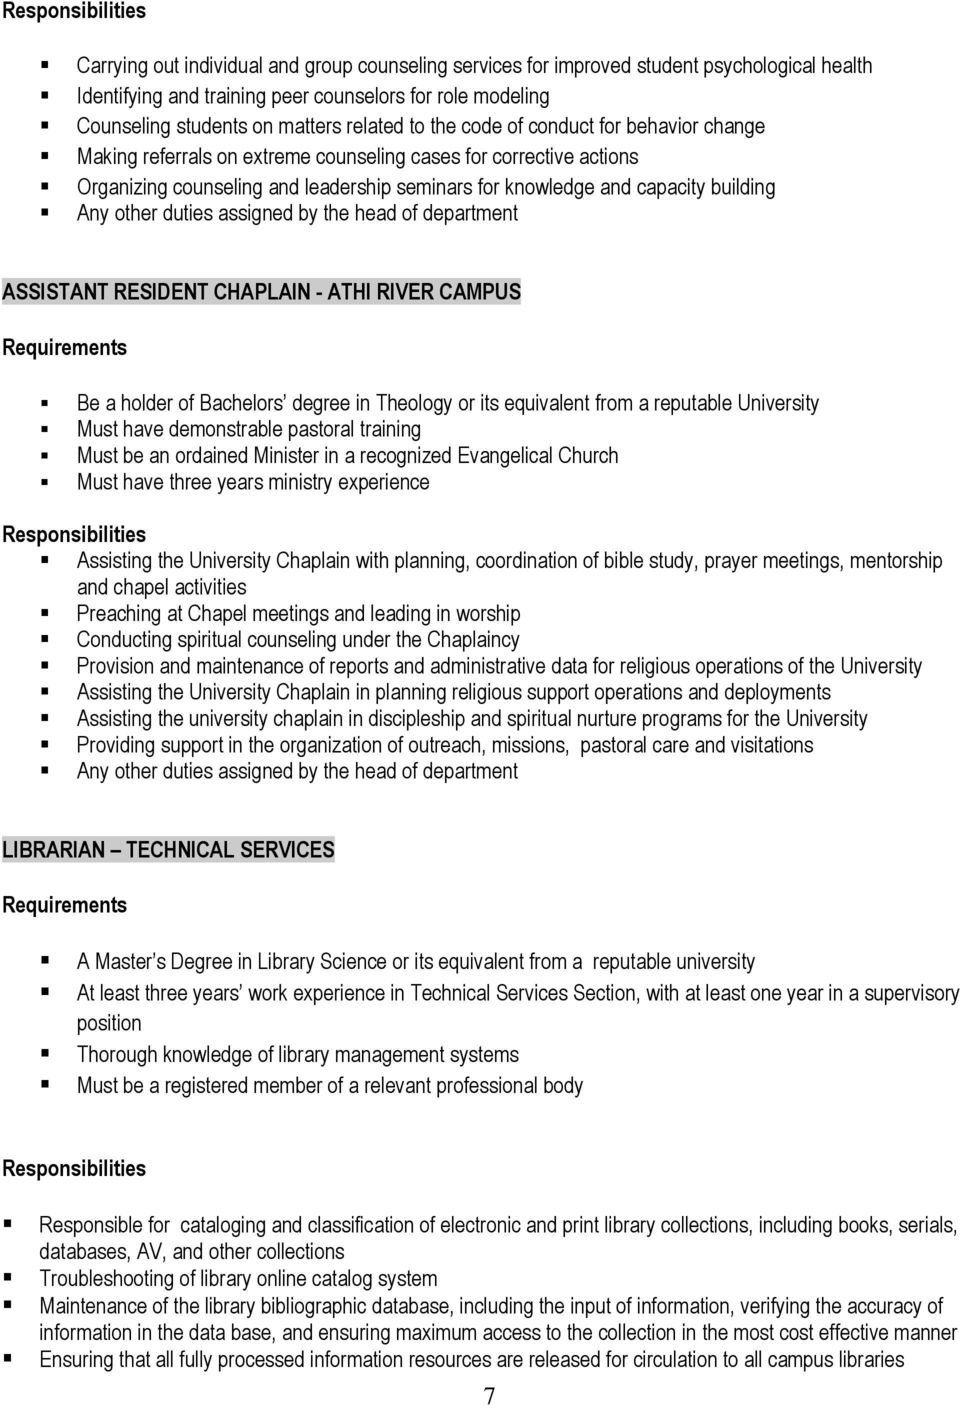 building ASSISTANT RESIDENT CHAPLAIN - ATHI RIVER CAMPUS Be a holder of Bachelors degree in Theology or its equivalent from a reputable University Must have demonstrable pastoral training Must be an